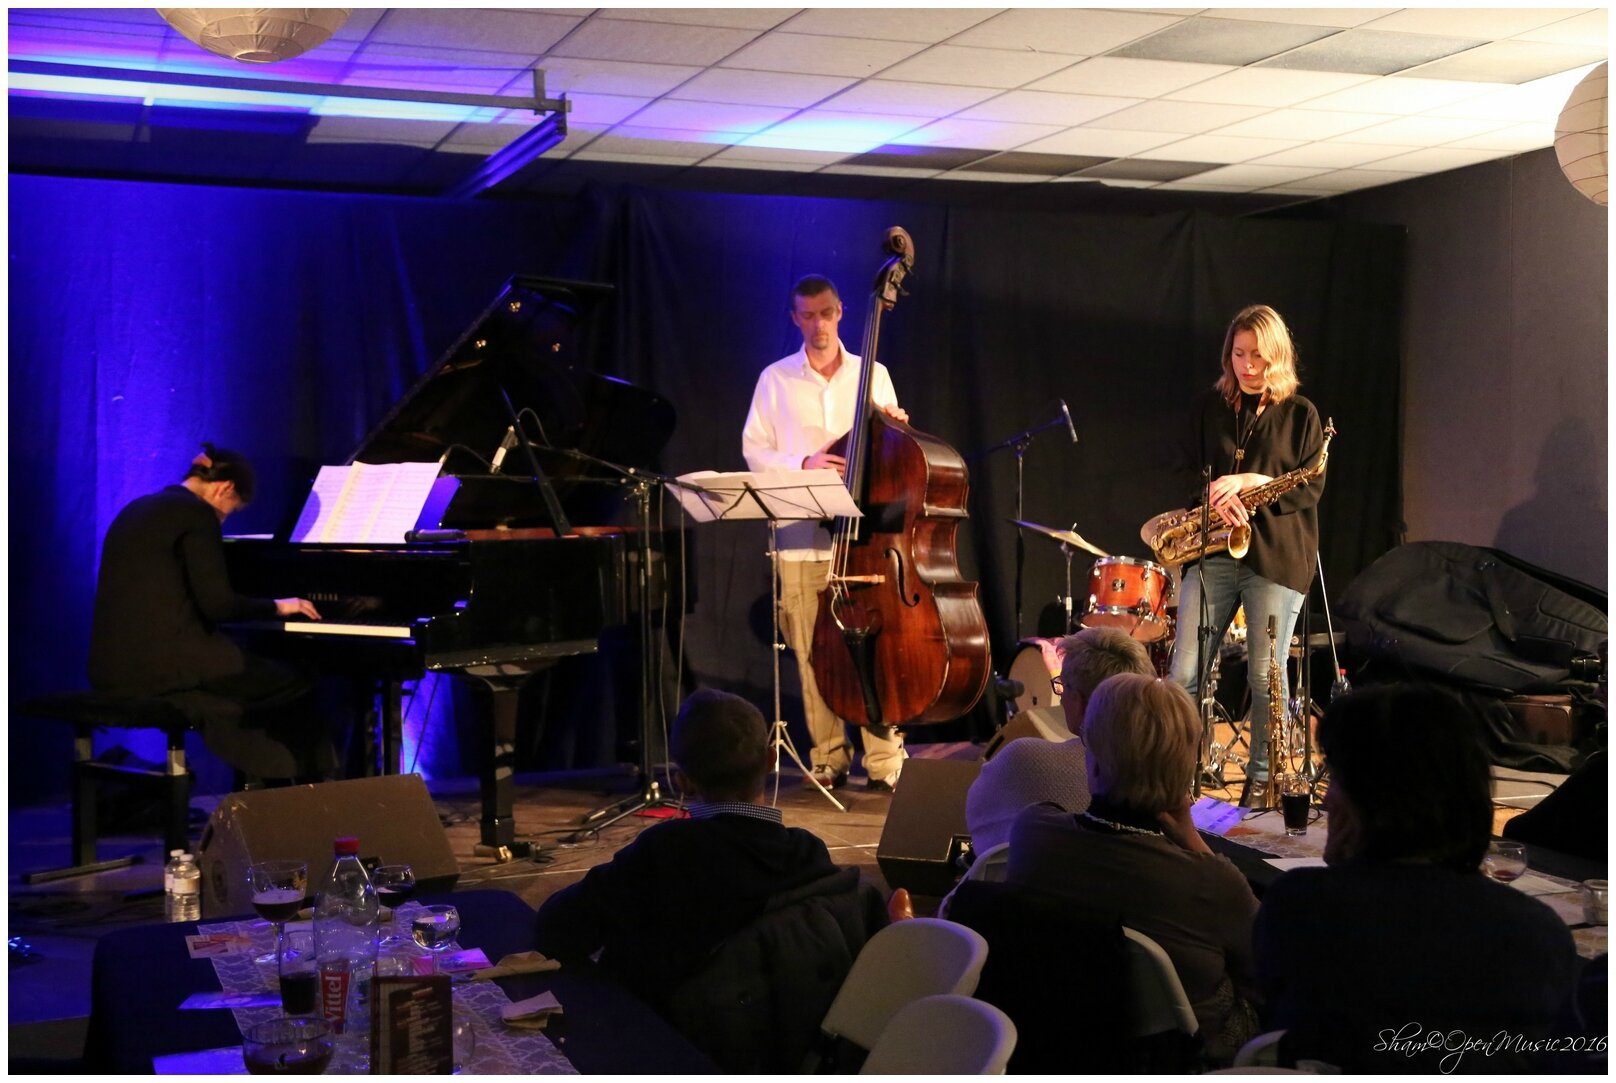 Open Music et Lys Music Orchestra : Prodigieuse collaboration pour l'Open Jazz Night